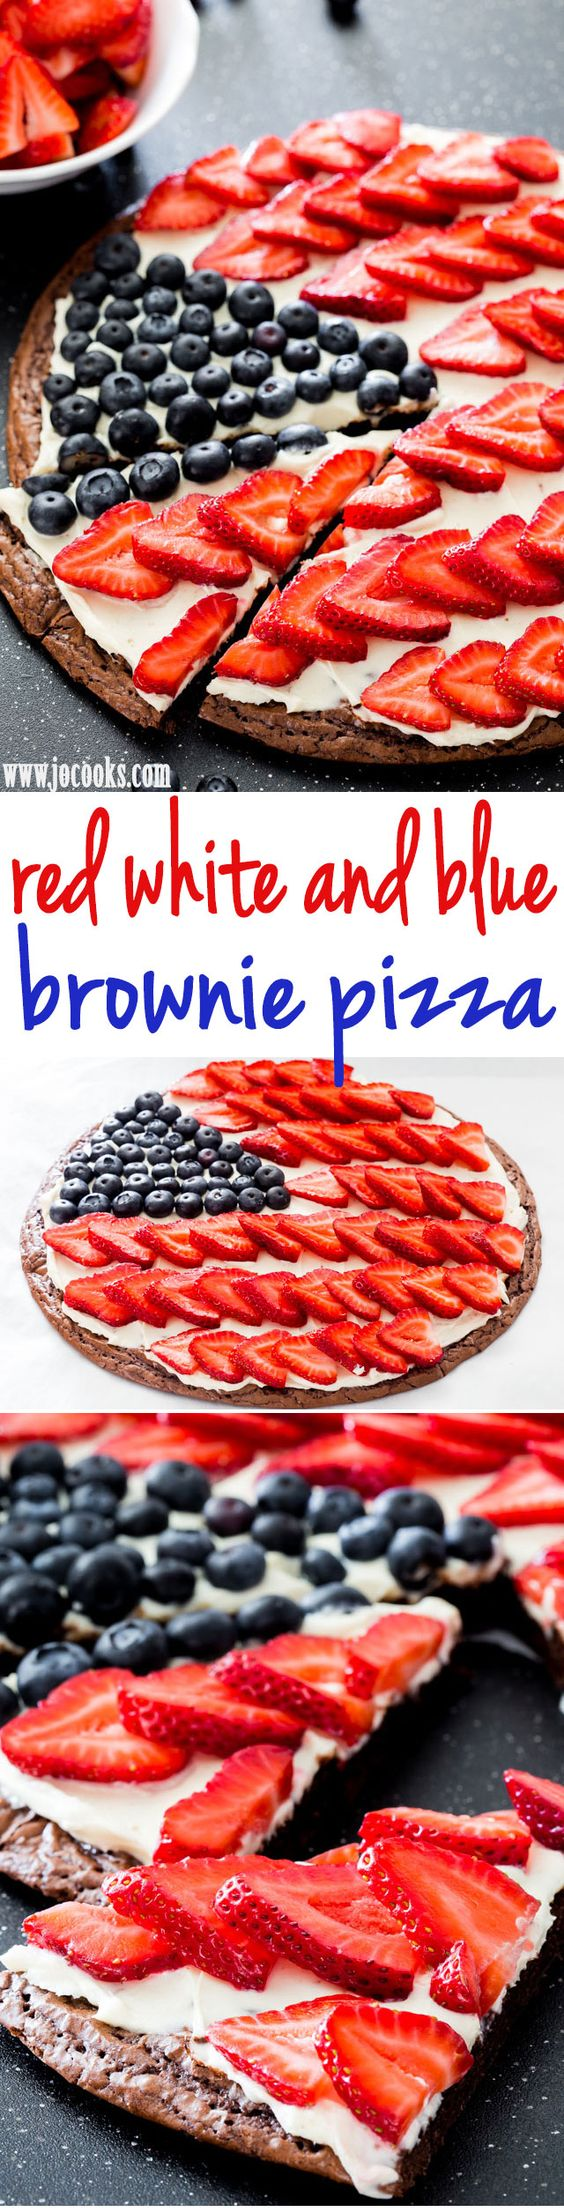 Red White and Blue Brownie Pizza - the perfect dessert for your 4th of July celebration. A delicious brownie crust topped with a cream cheese frosting and loaded with berries!: